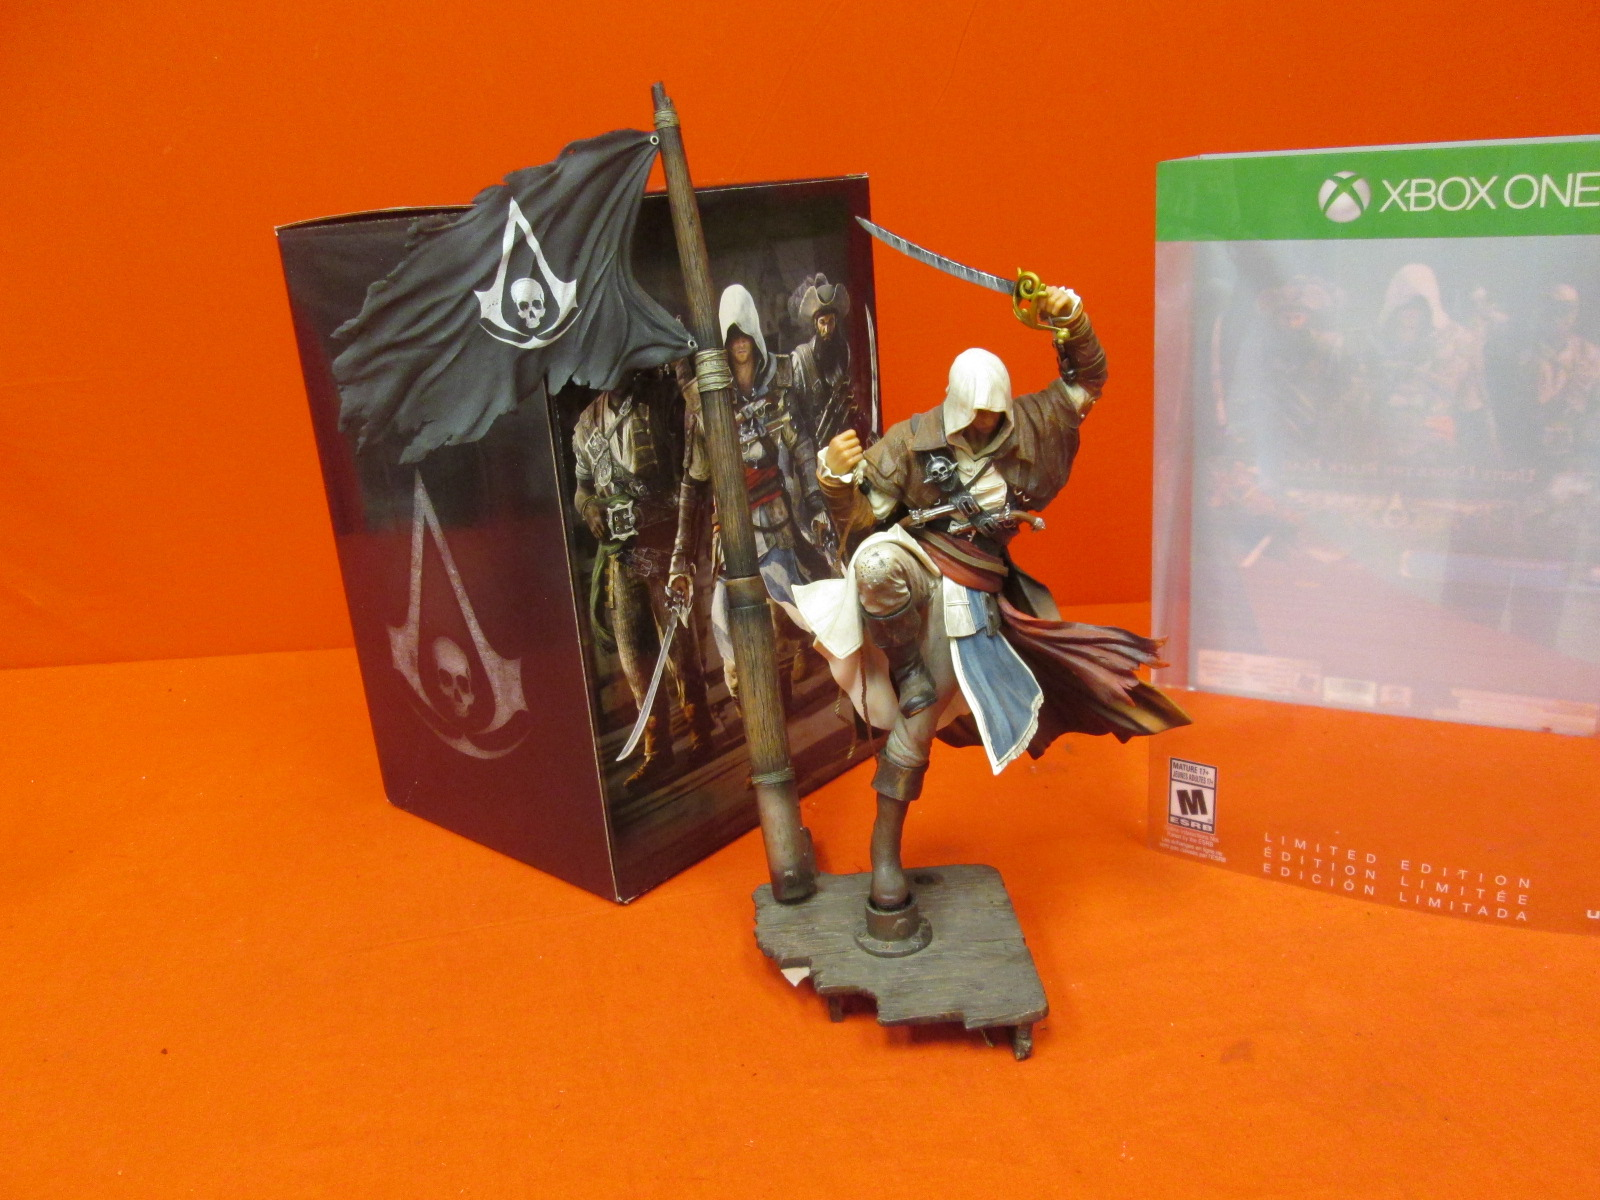 Assassin's Creed IV: Black Flag Limited Edition For Xbox One Figurine